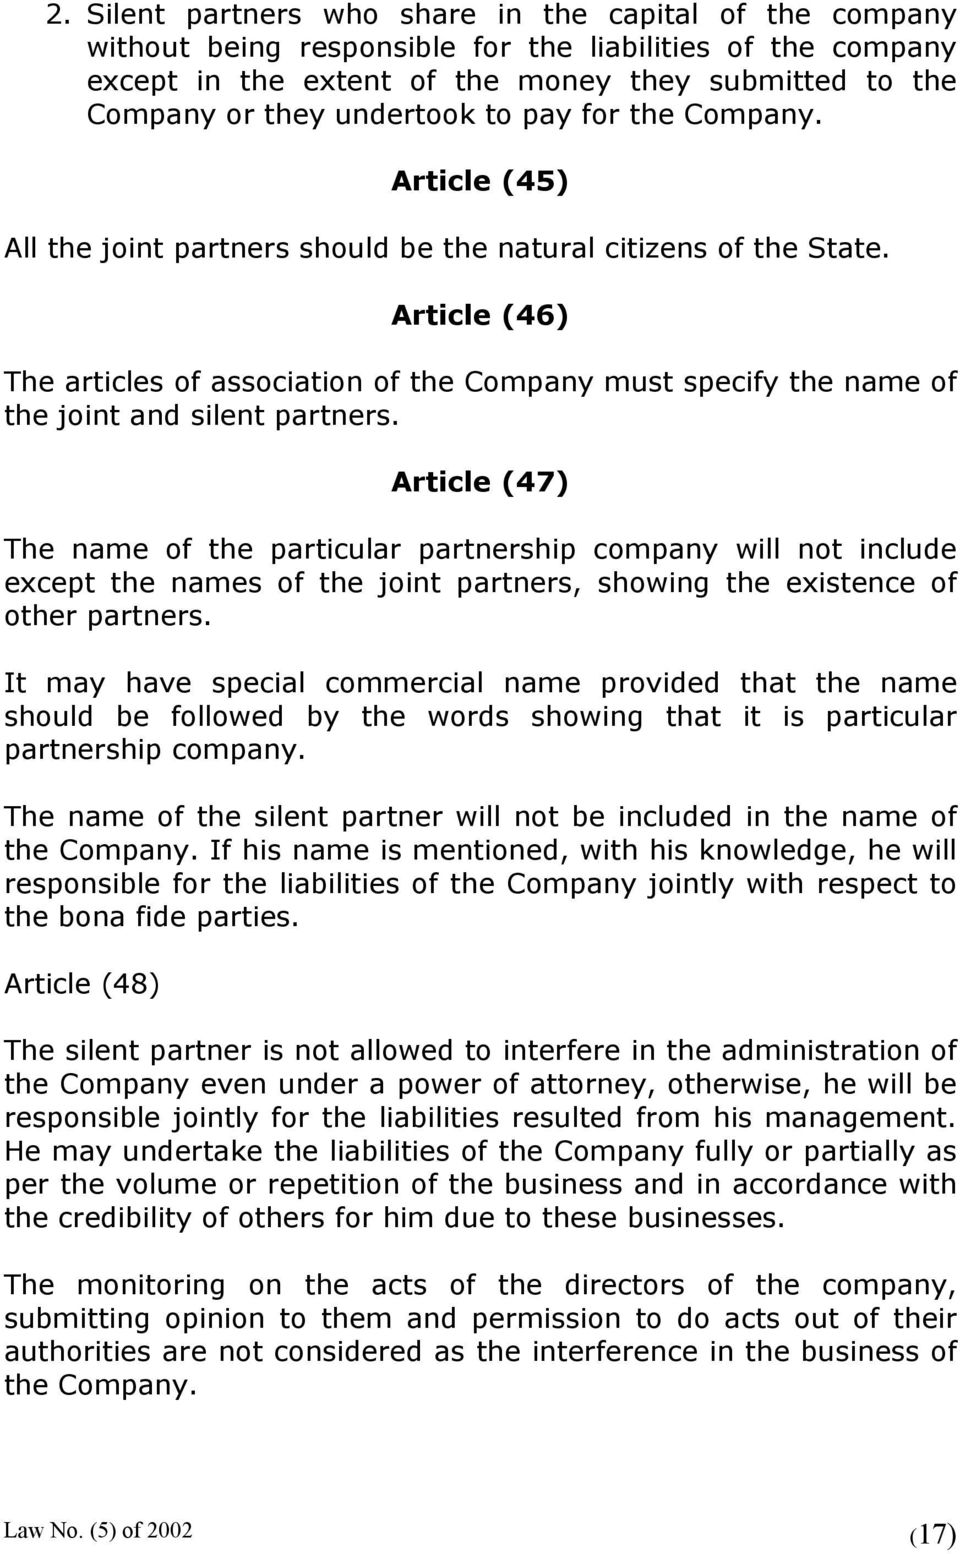 Article (46) The articles of association of the Company must specify the name of the joint and silent partners.